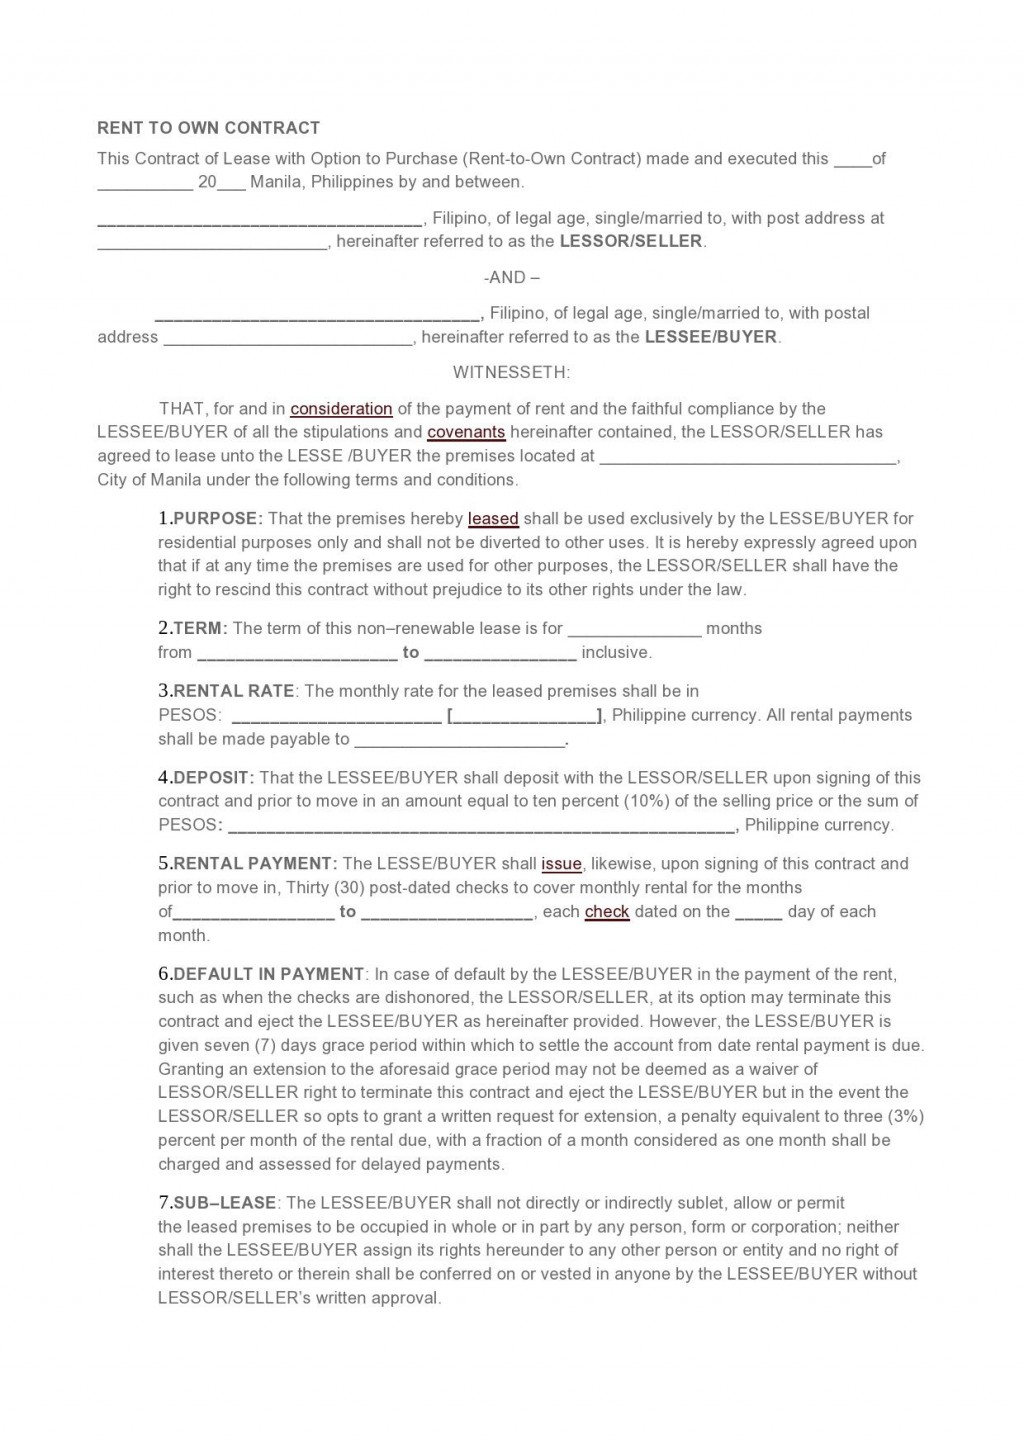 007 Dreaded Rent To Own Contract Template Philippine Picture  Philippines SampleLarge